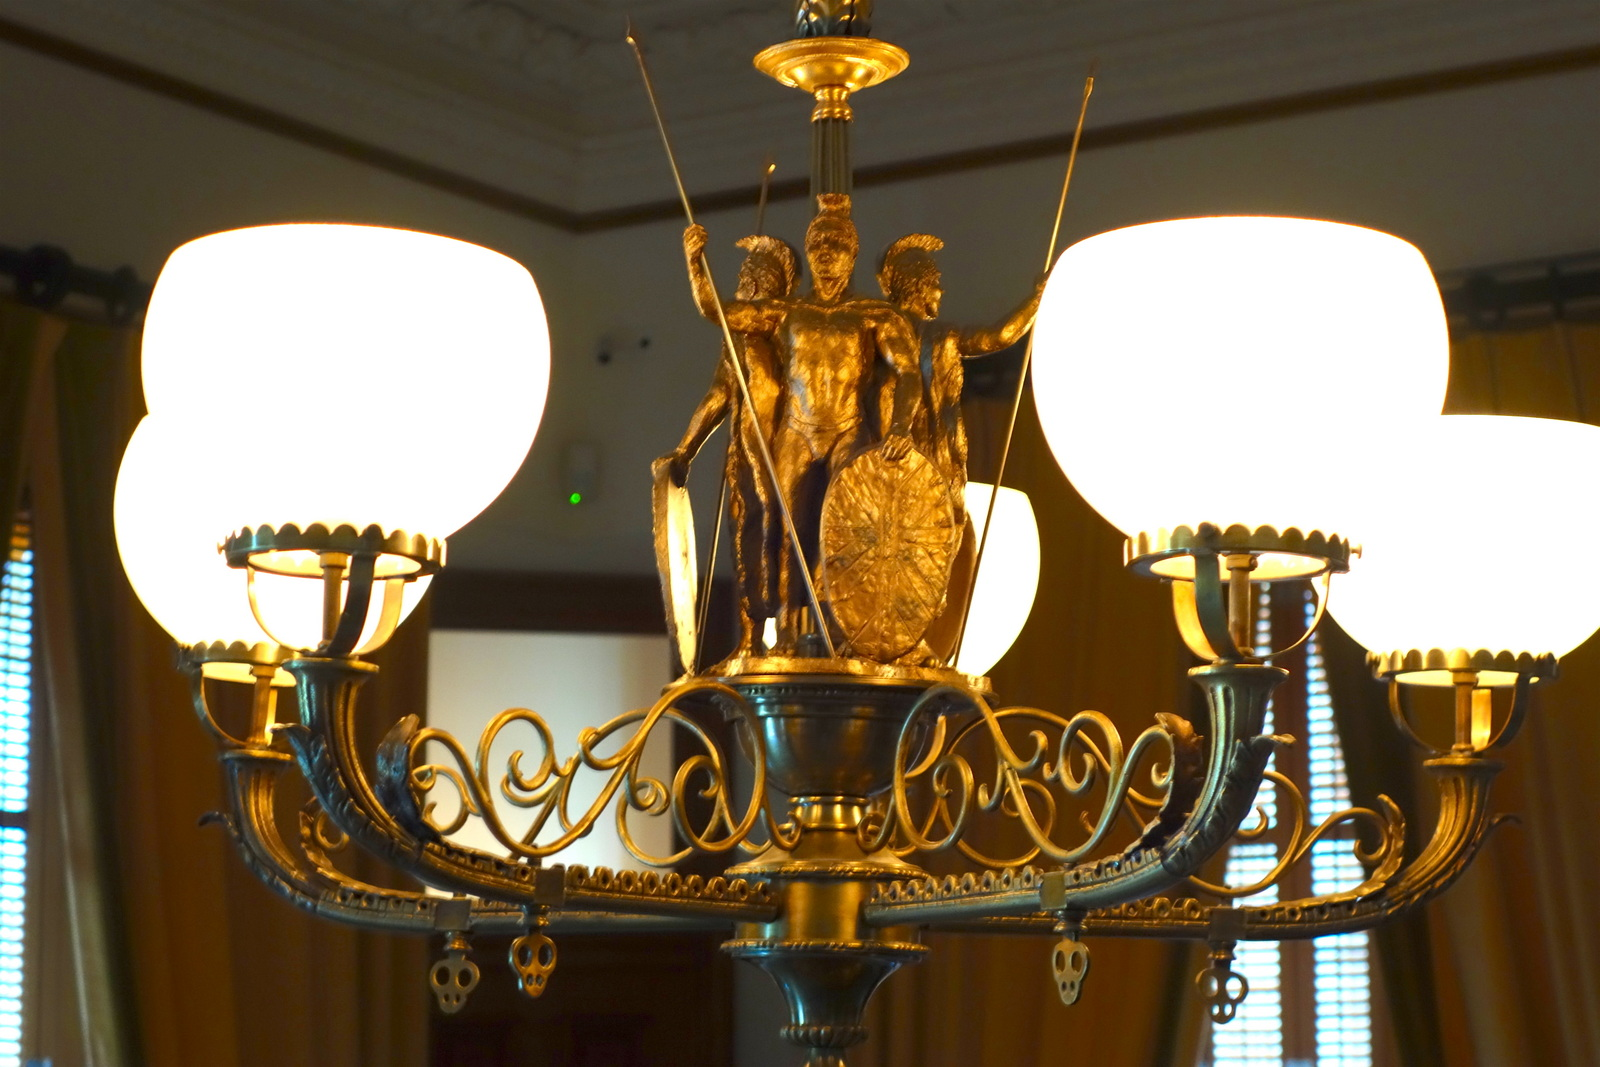 Chandelier, Iolani Palace. From Digging Deeper into Hawaiian History on the Hawai'i Monarchs Tour